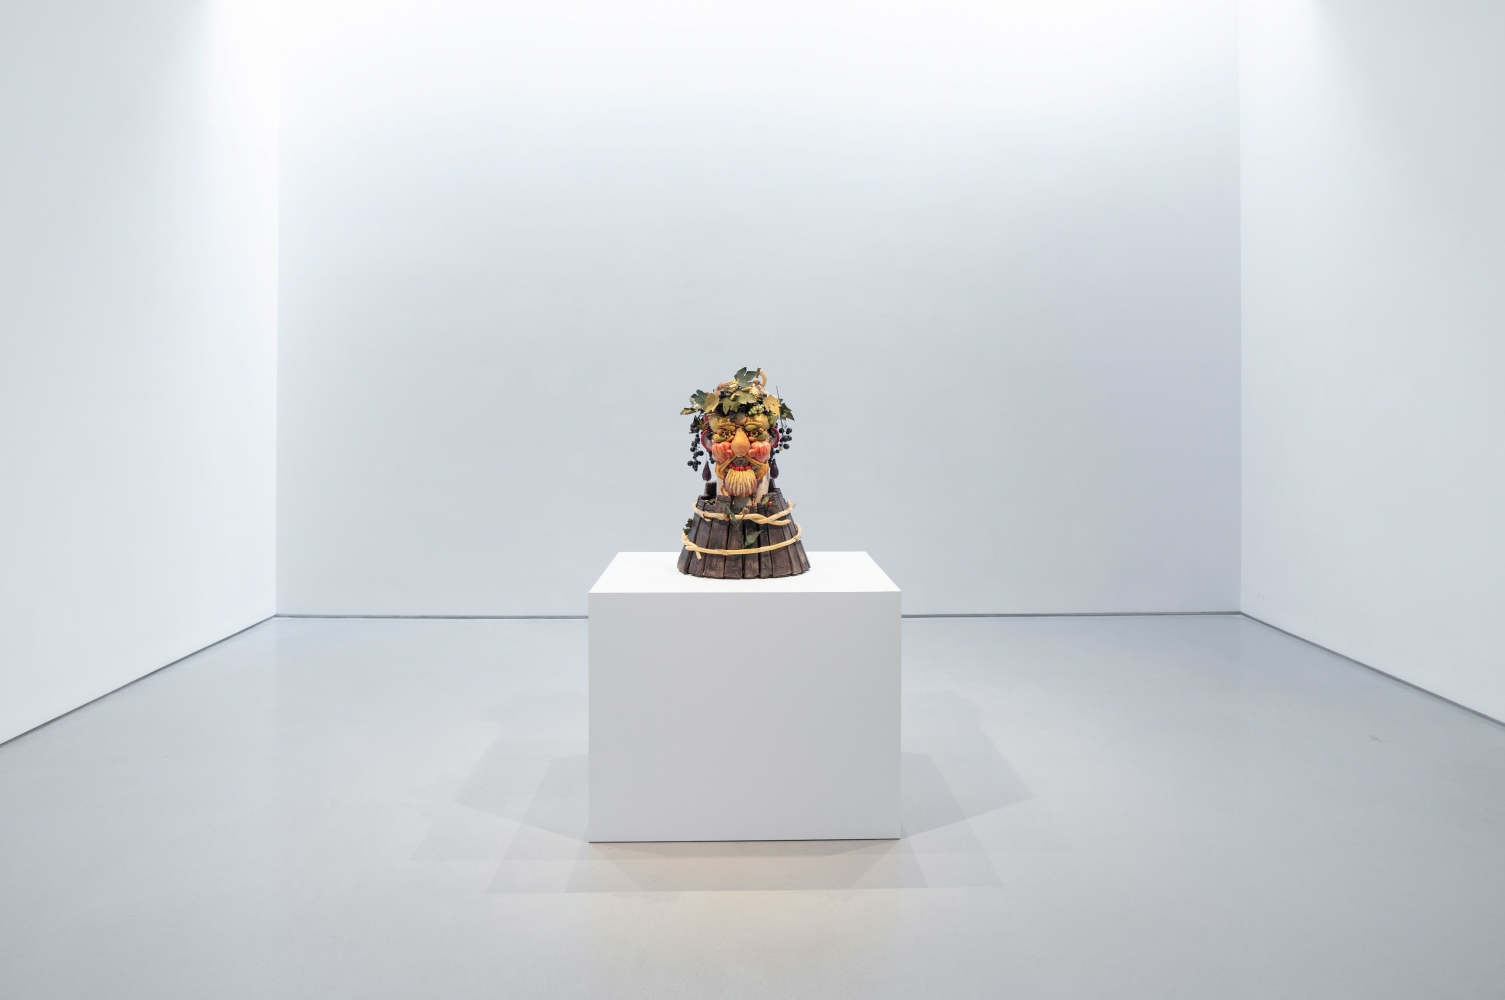 a bust of fruits and vegetables sits on a white pedestal in a big gallery room